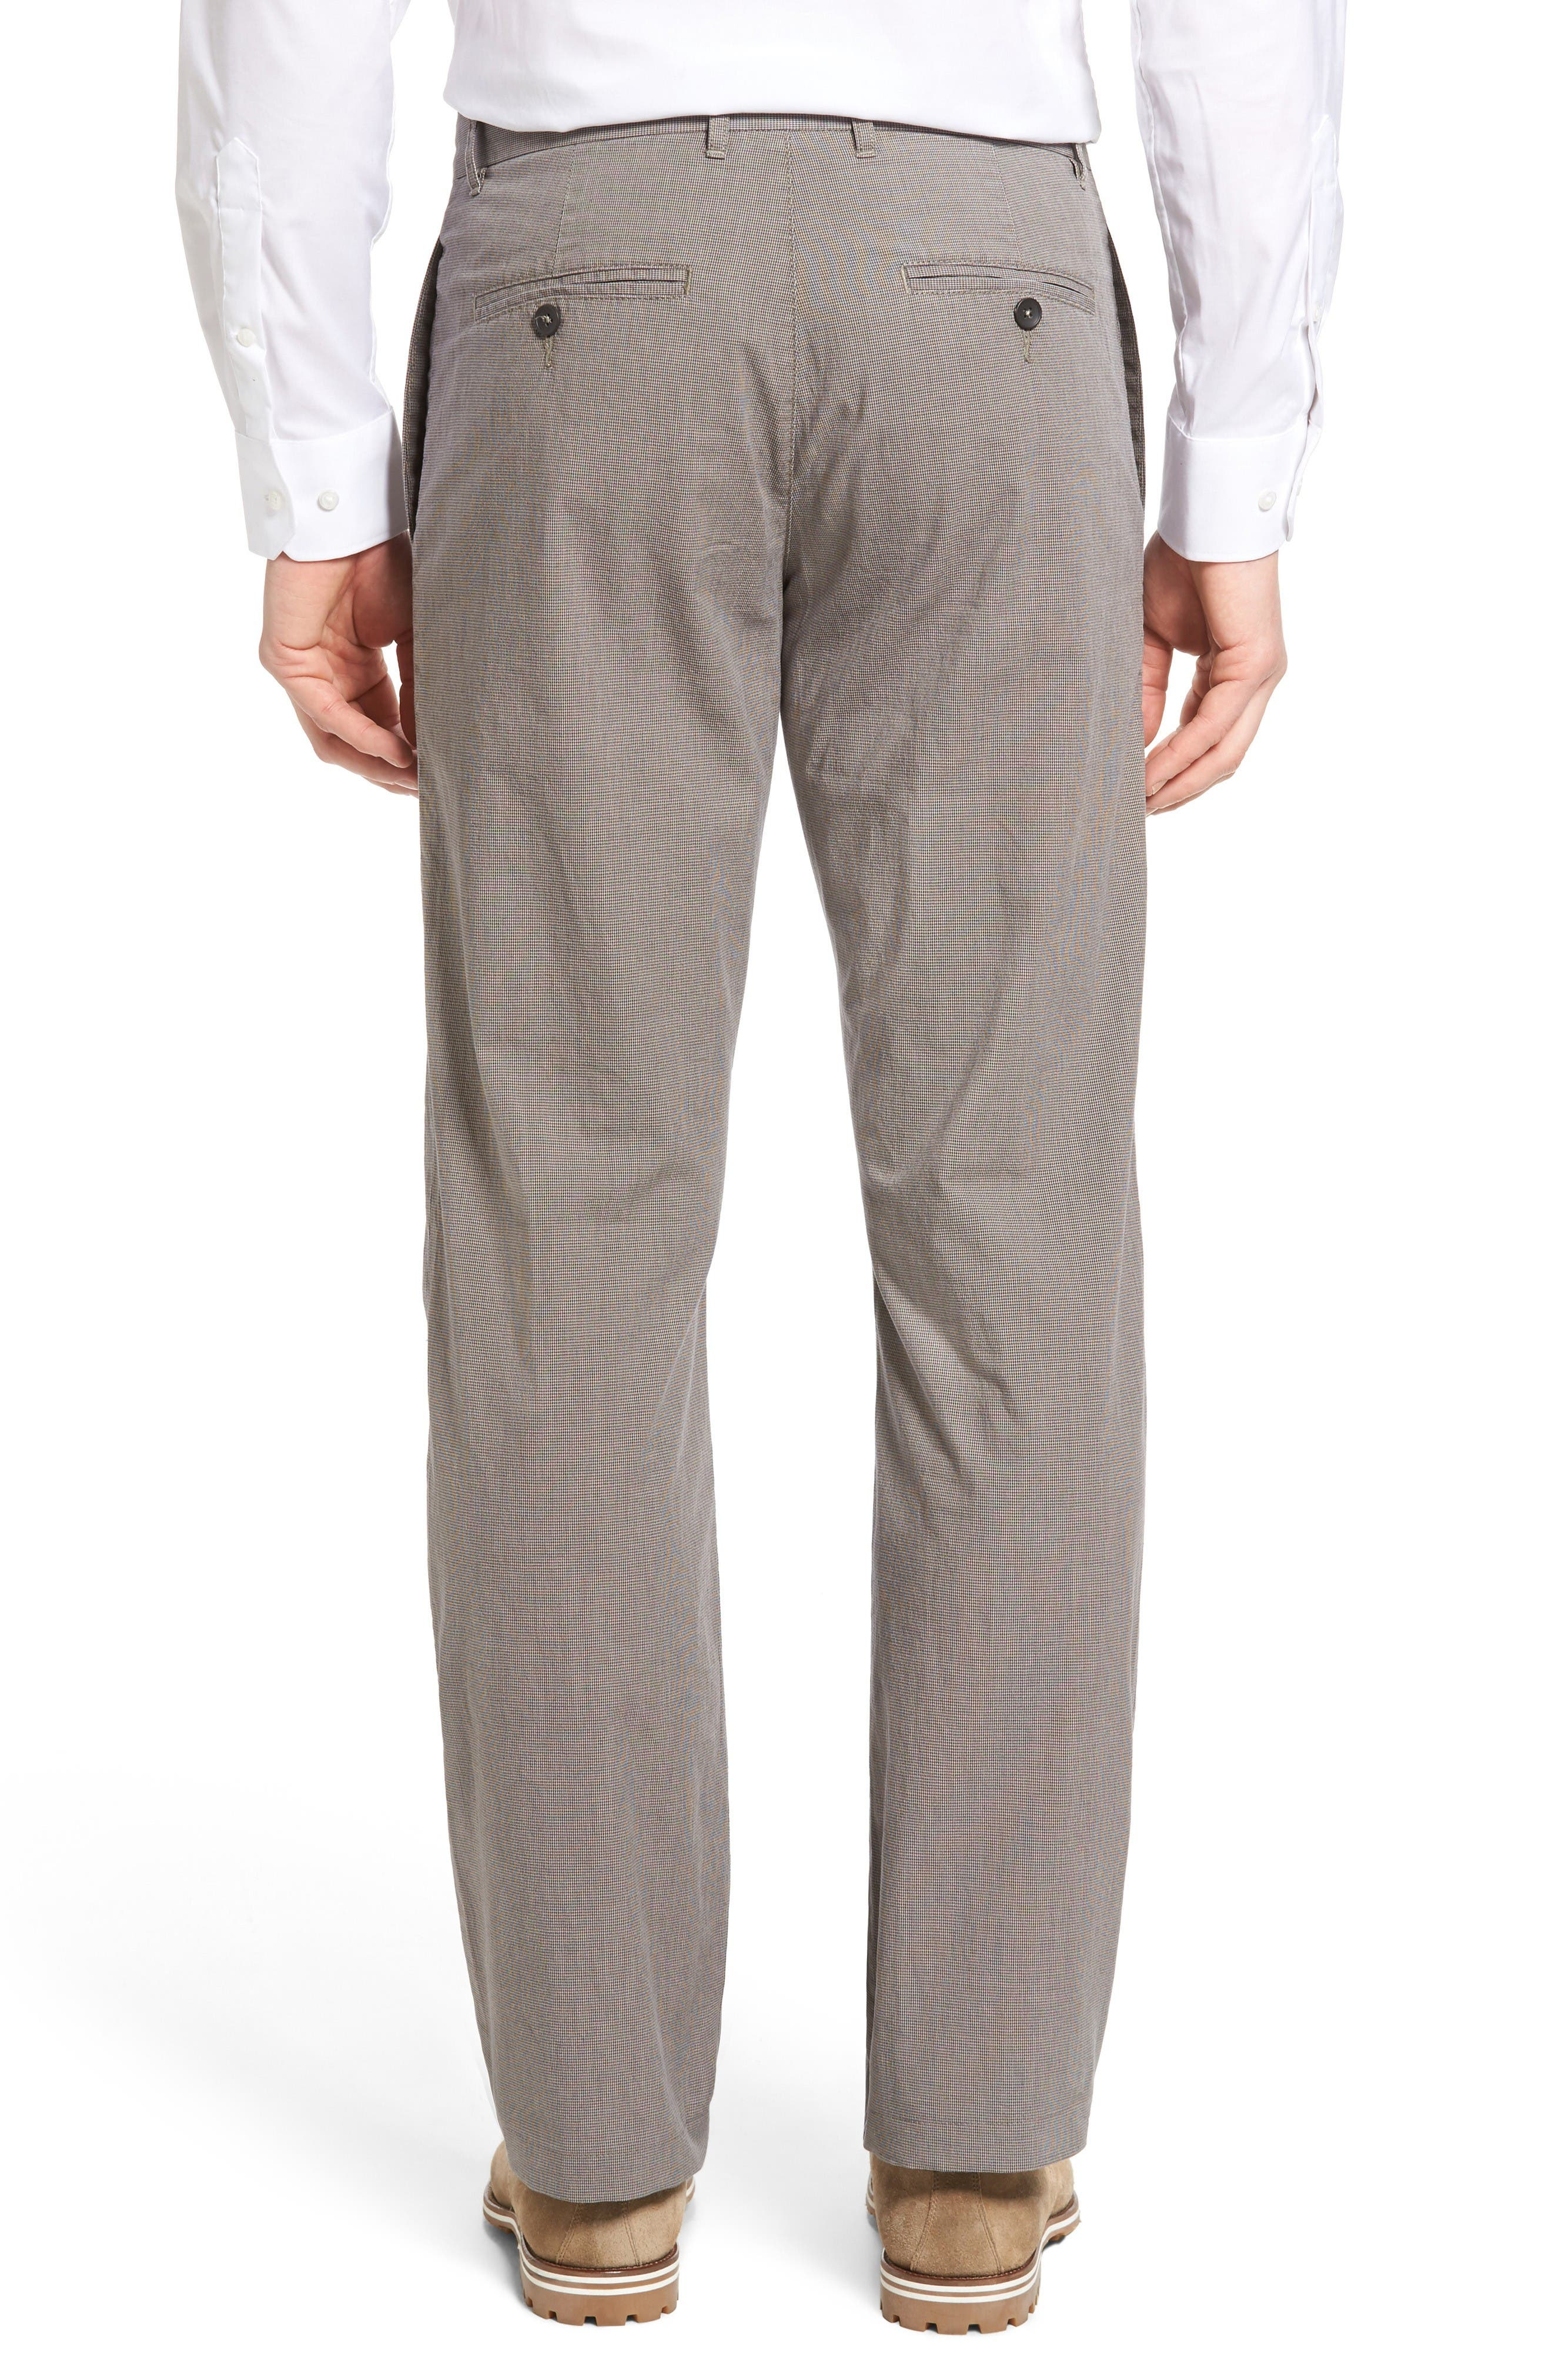 Woodward Regular Fit Trousers,                             Alternate thumbnail 2, color,                             Natural